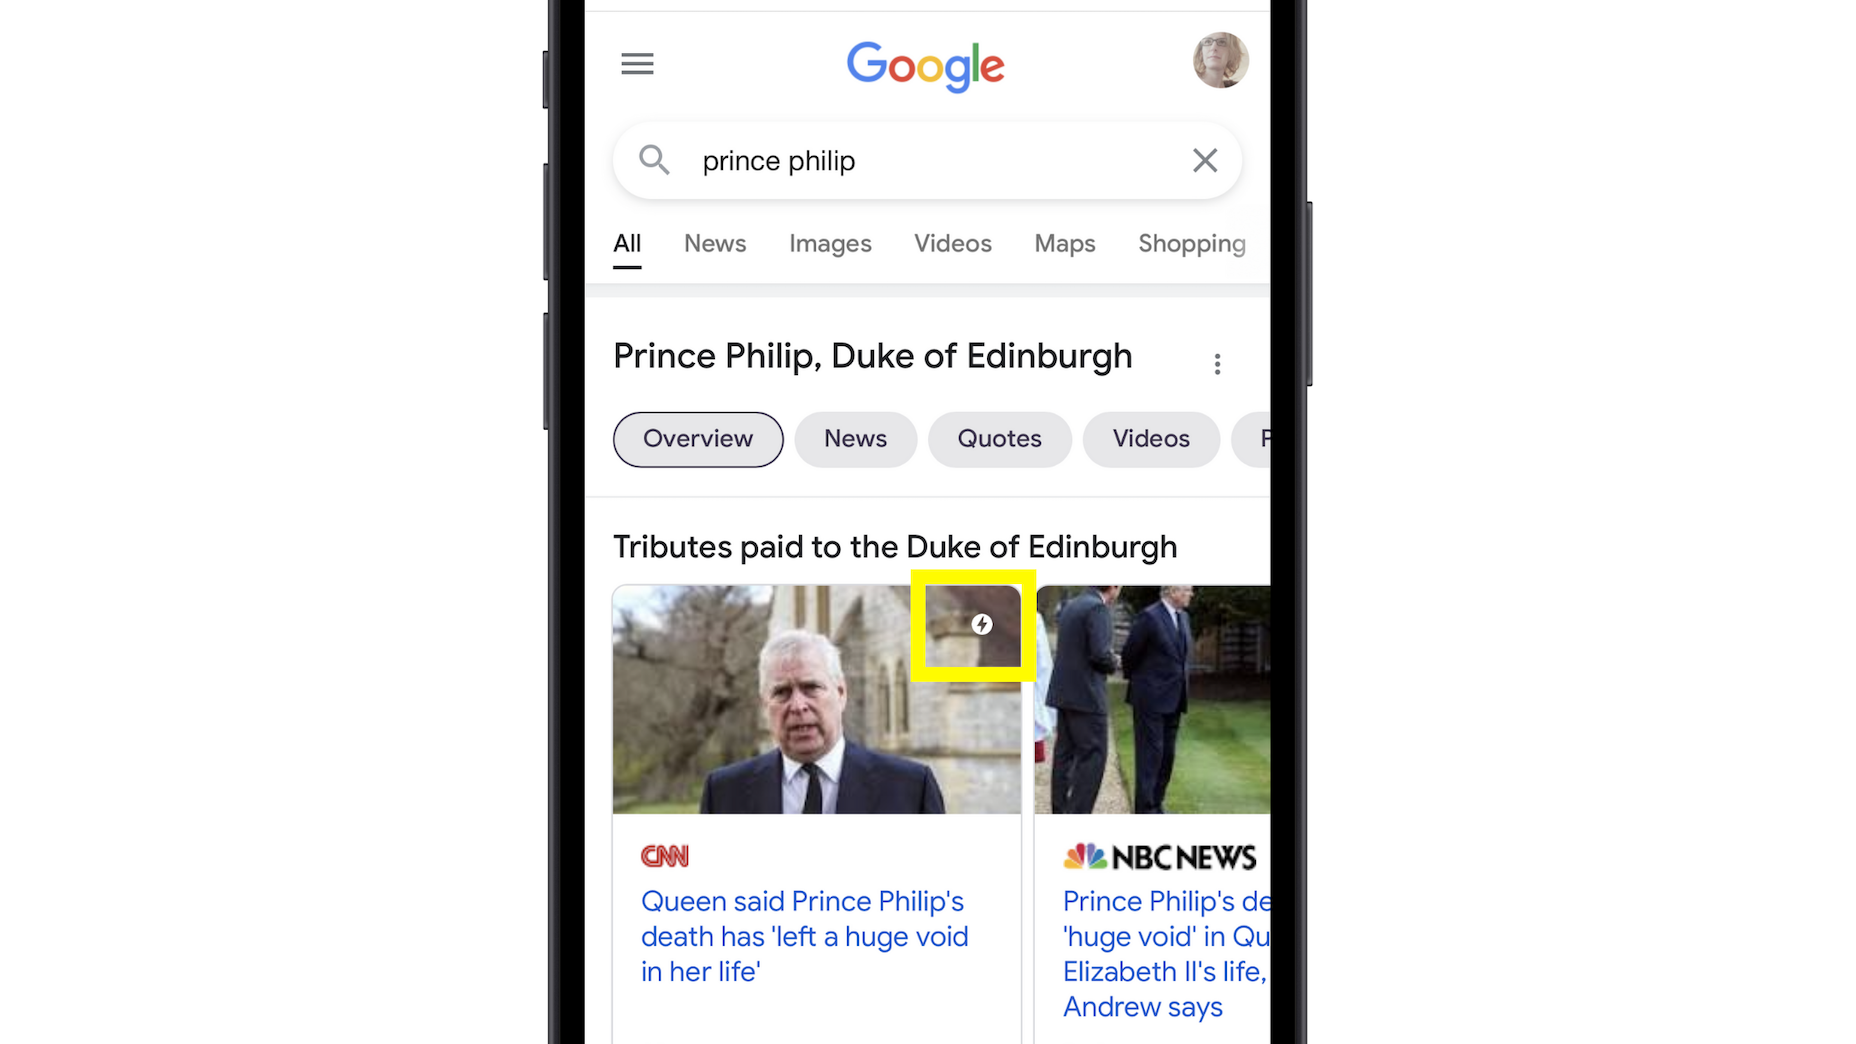 Google Top Stories On An Iphone With A Search For Prince Philip